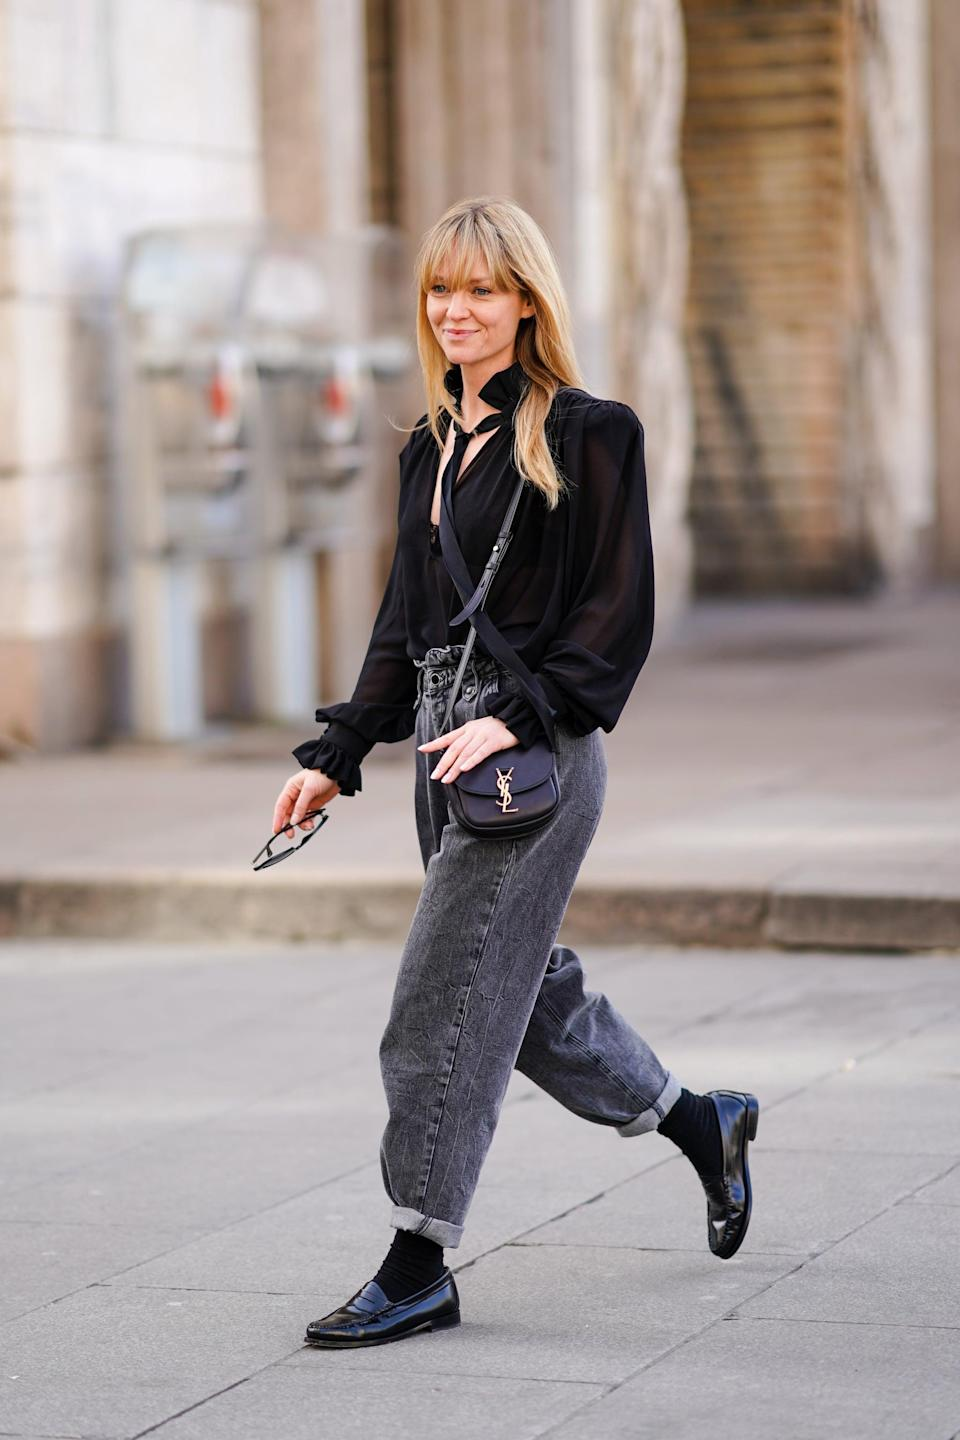 <p>A blissful ode to the '80s, pleated high-rise jeans are a sleeker, more stylized take on the mom jean. We've spotted them on Chrissy Teigen, Hailey Bieber, and more. They can be easily paired with turtlenecks for winter and fitted tanks or plain muscle tees for hotter months. If you really want to go all out '80s, opt for an acid wash.</p>